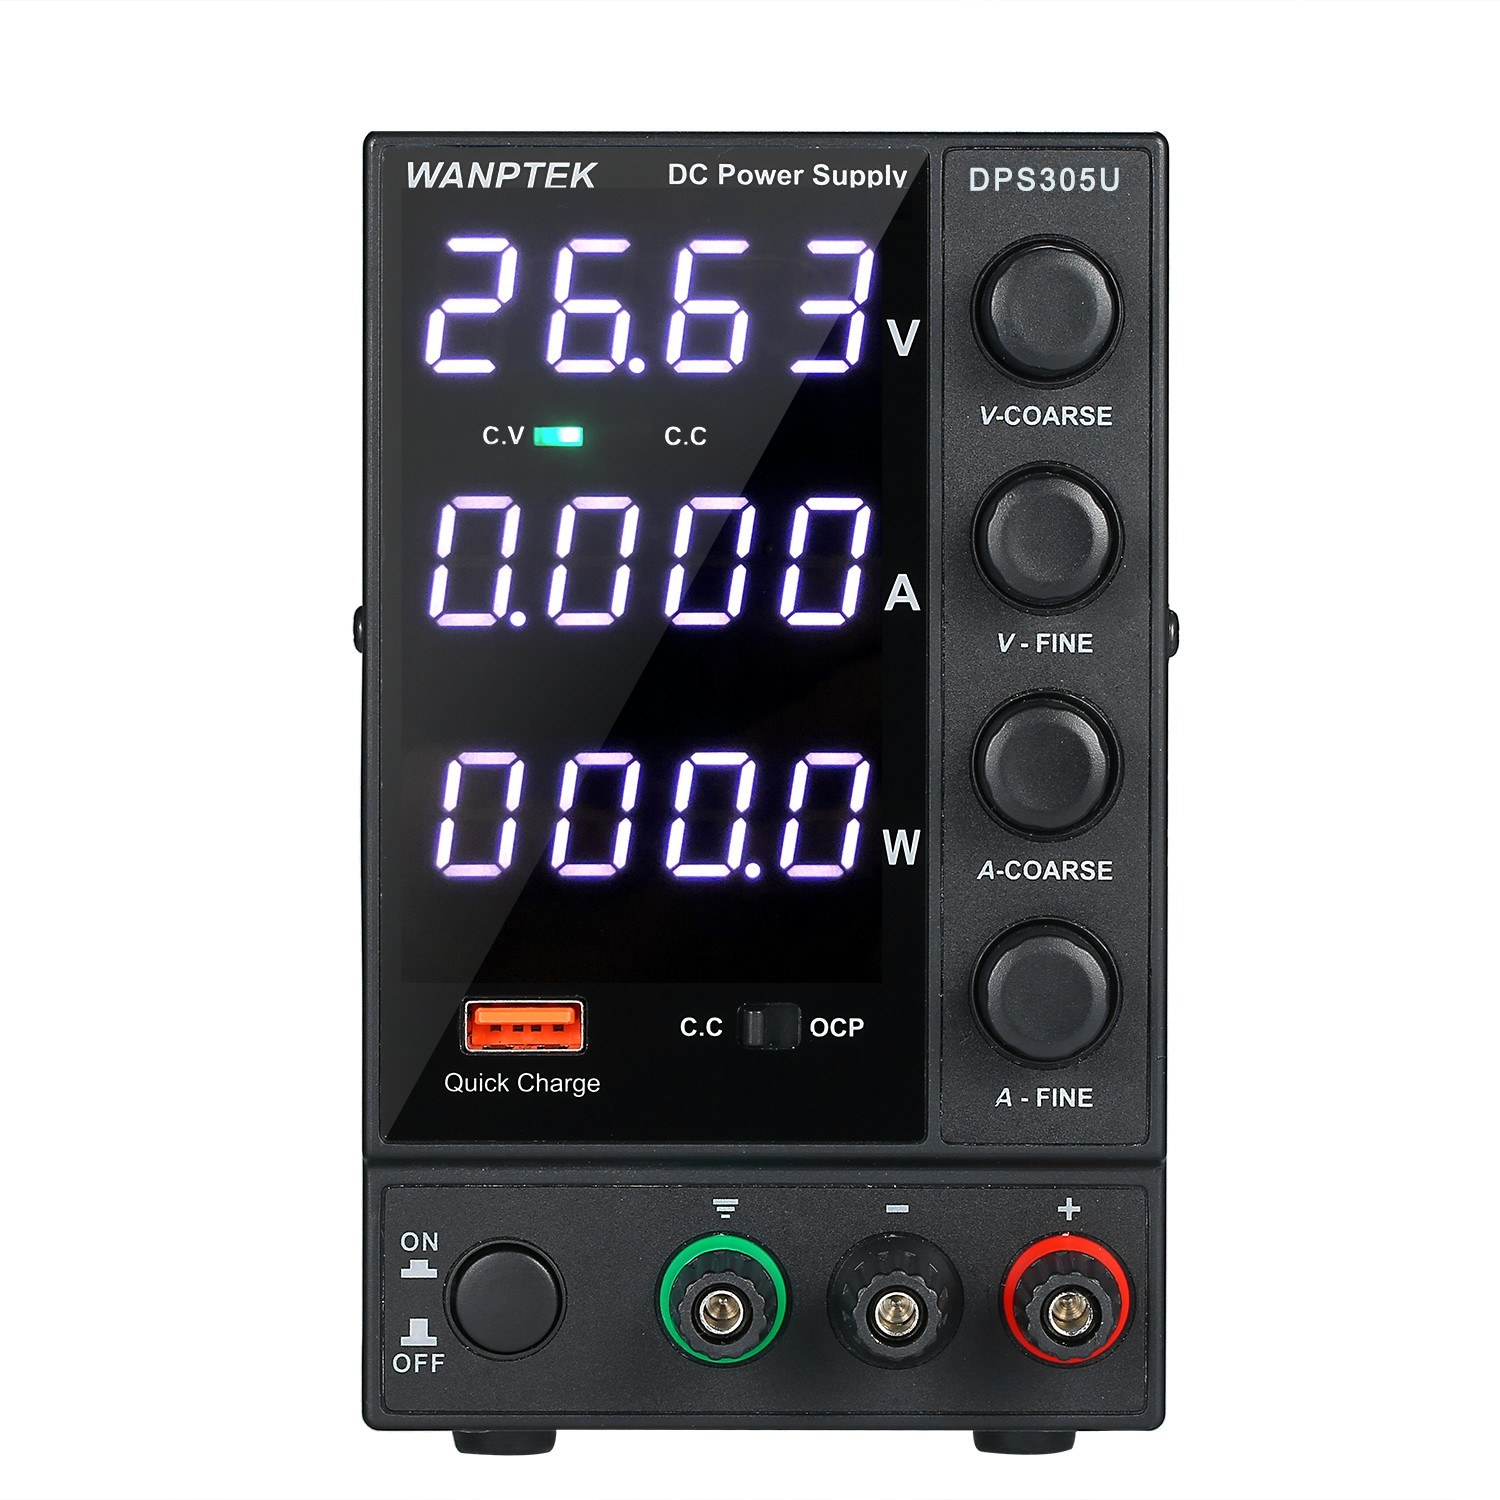 WANPTEK DPS305U 0-30V 0-5A 150W Switching DC Power Supply 4 Digits Display LED High Precision Adjustable Mini Power Supply AC 115V/230V 50/60Hz